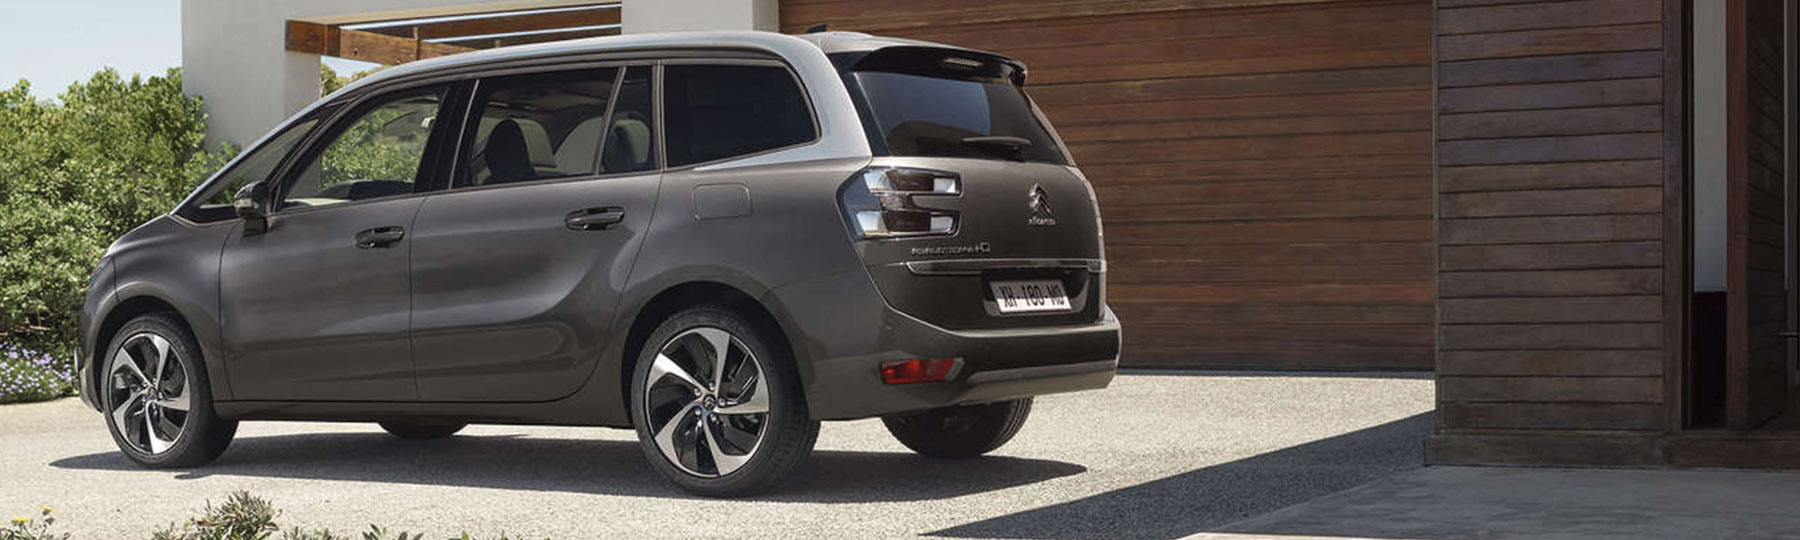 new citroen grand c4 picasso toomey motor group in essex. Black Bedroom Furniture Sets. Home Design Ideas